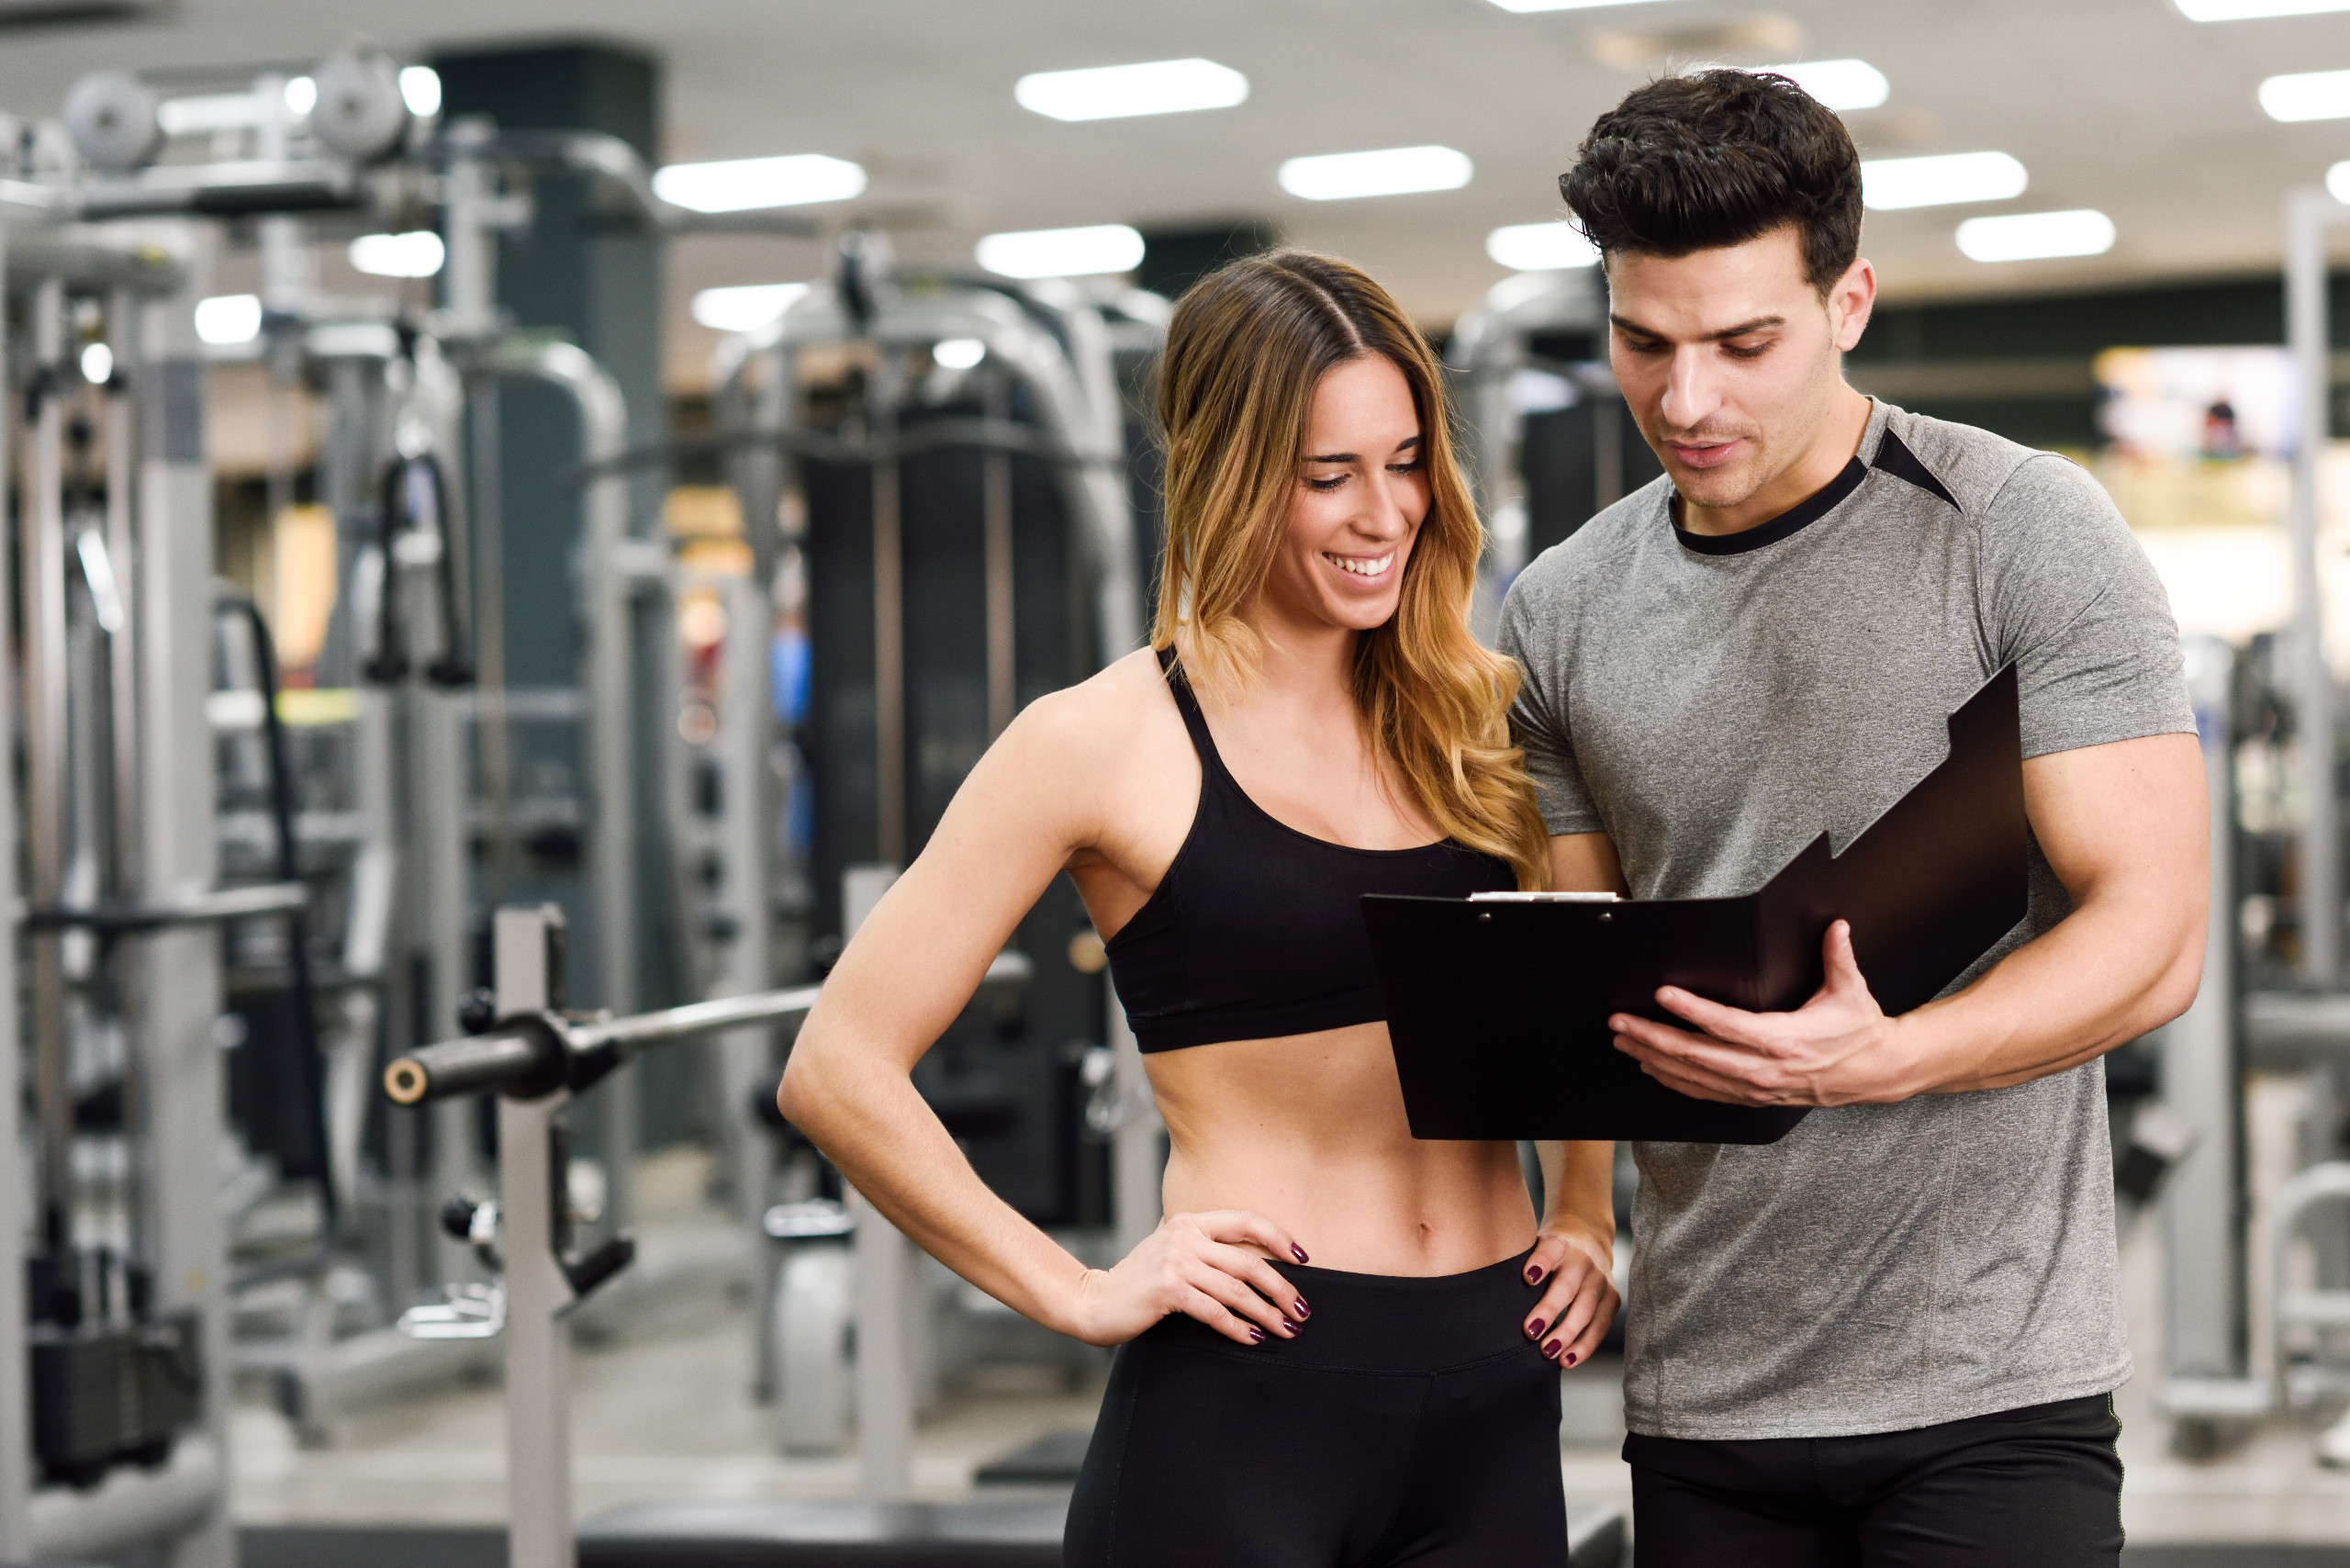 Personal trainer and client looking at her progress at the gym. Athletic man and woman wearing sportswear.